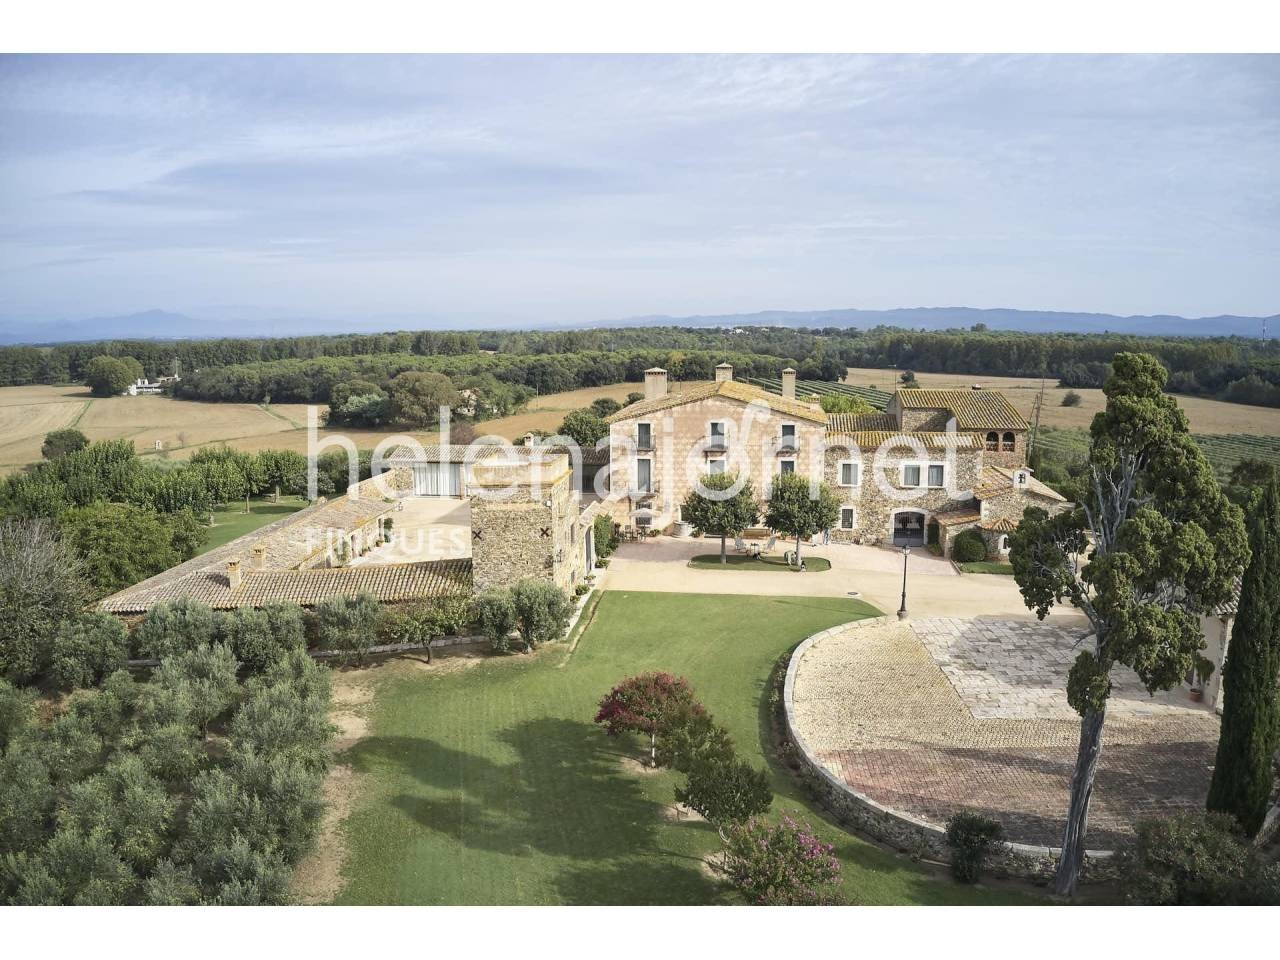 Unique and exceptional rustic property of 137ha, with two renovated country houses - 1542